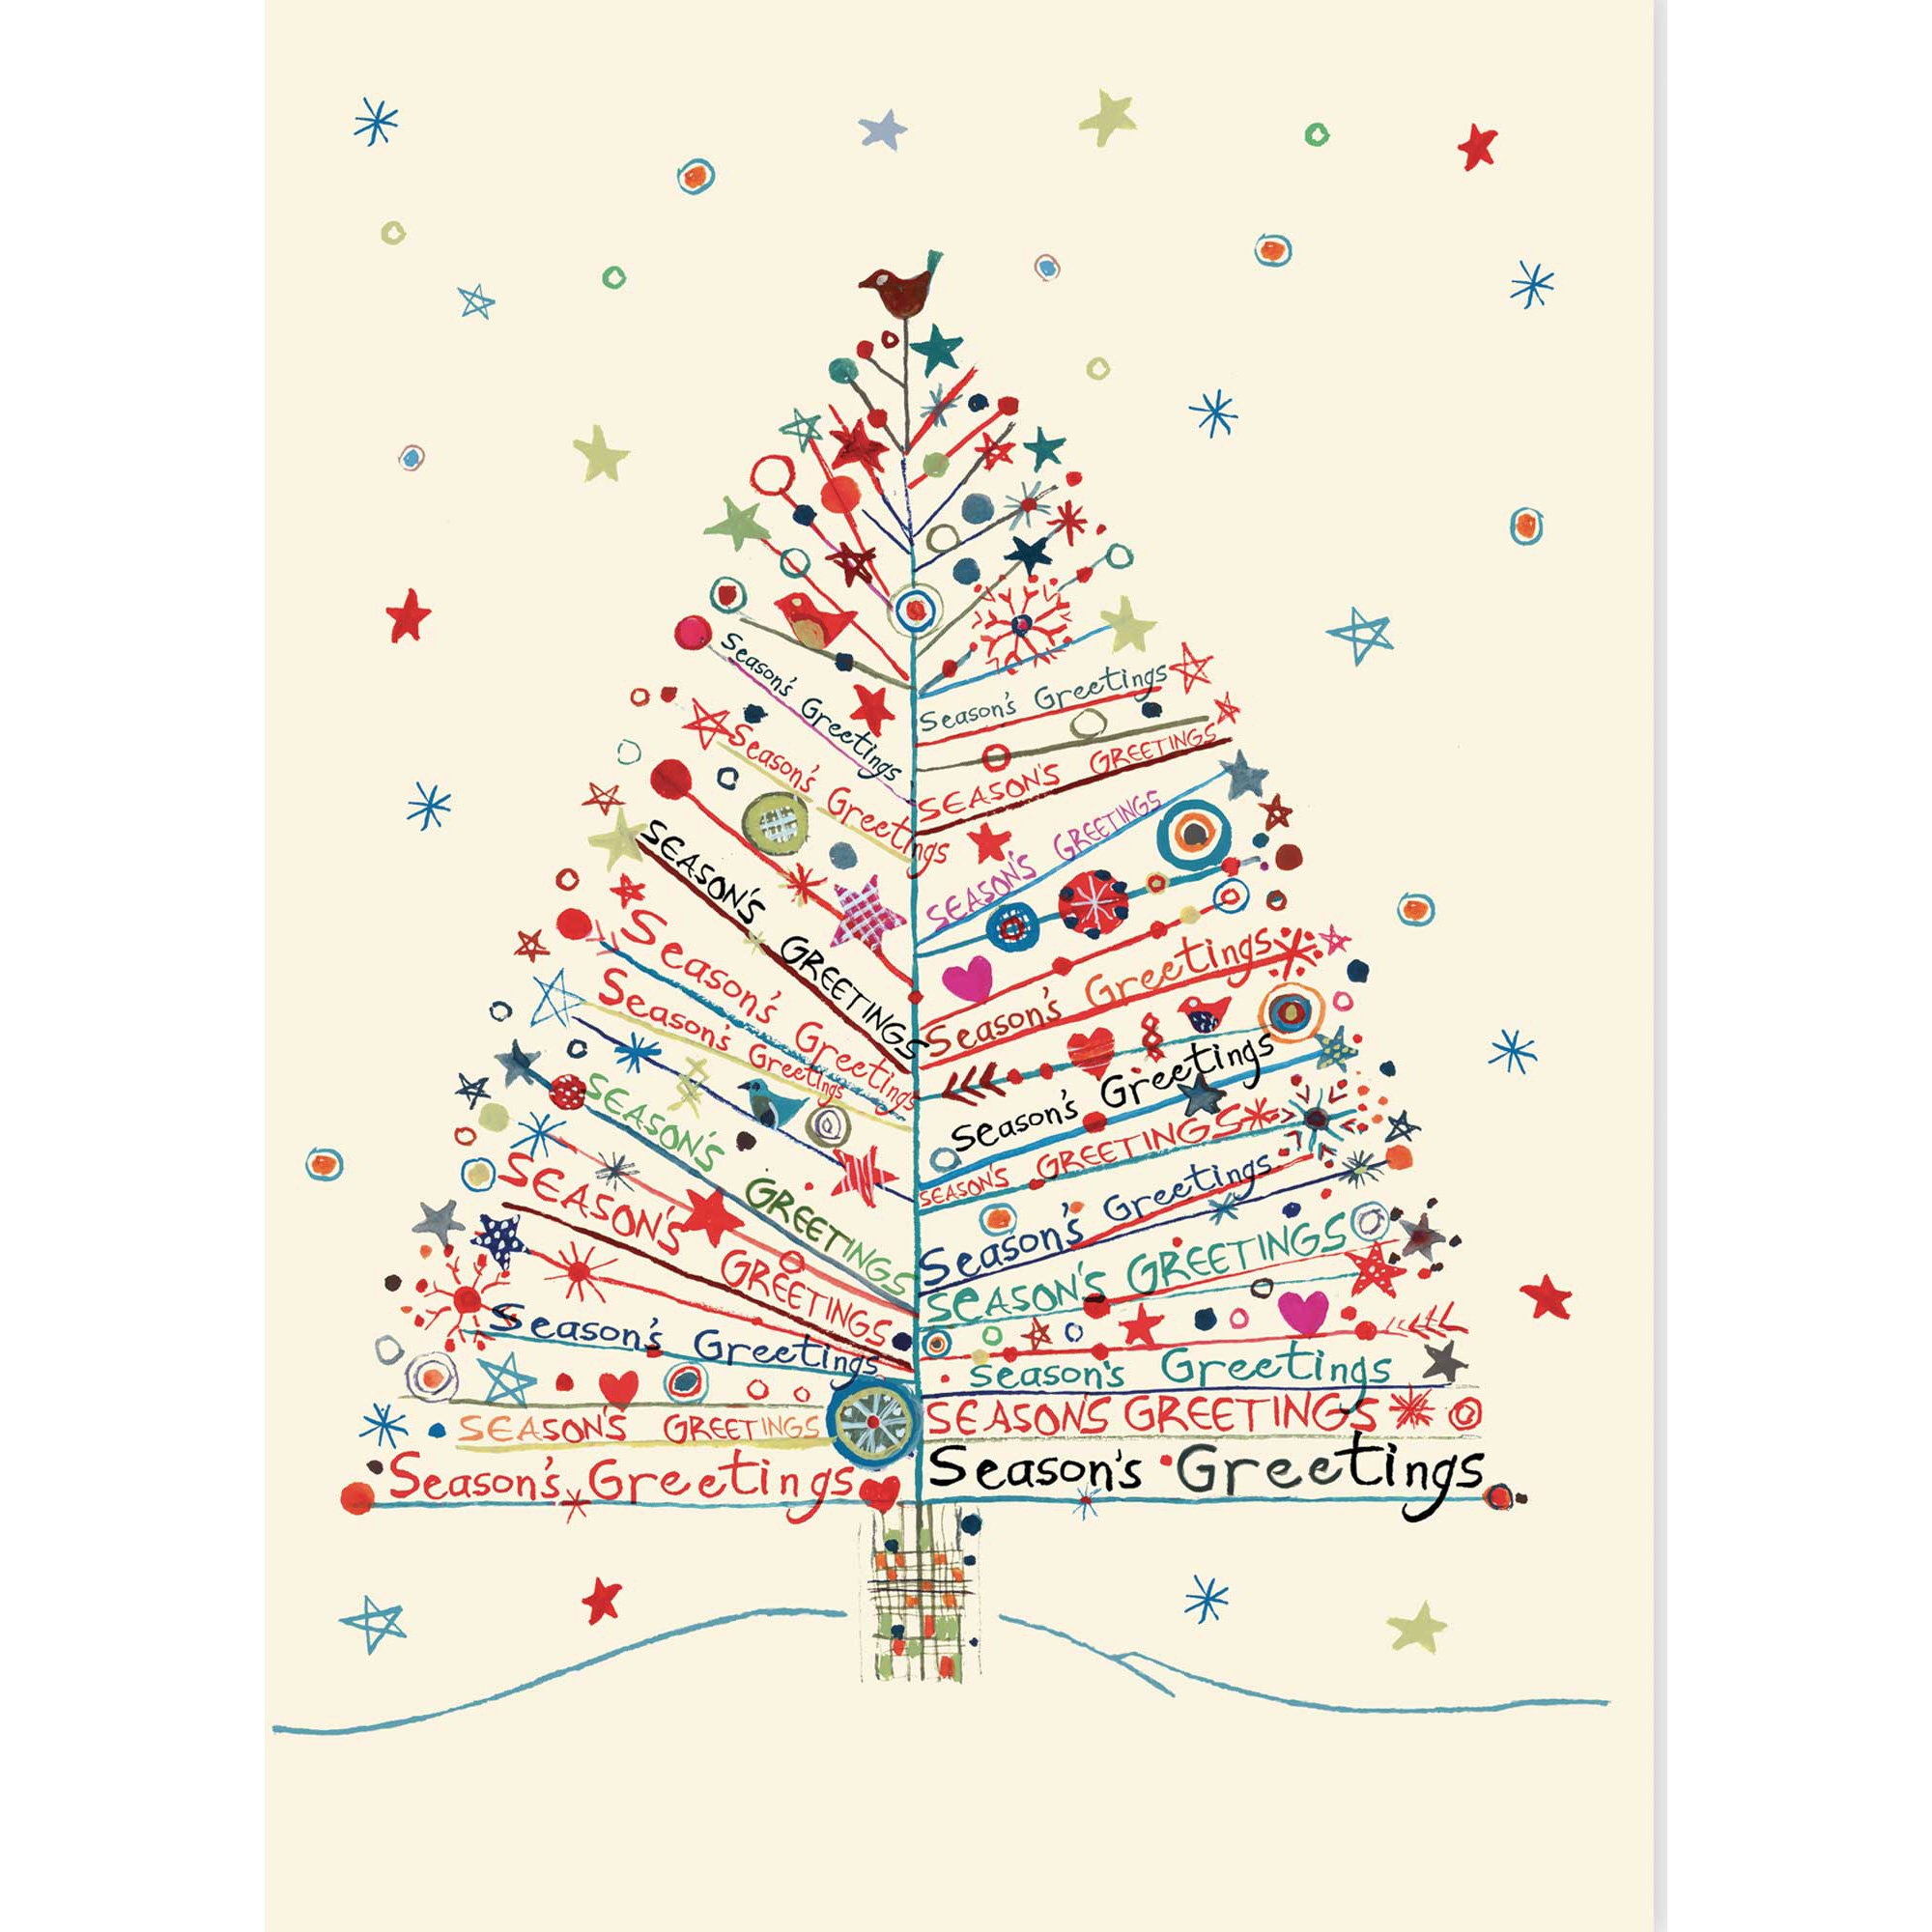 seasons greetings tree large boxed holiday cards christmas cards greeting cards peter pauper press 9781441314949 amazoncom books